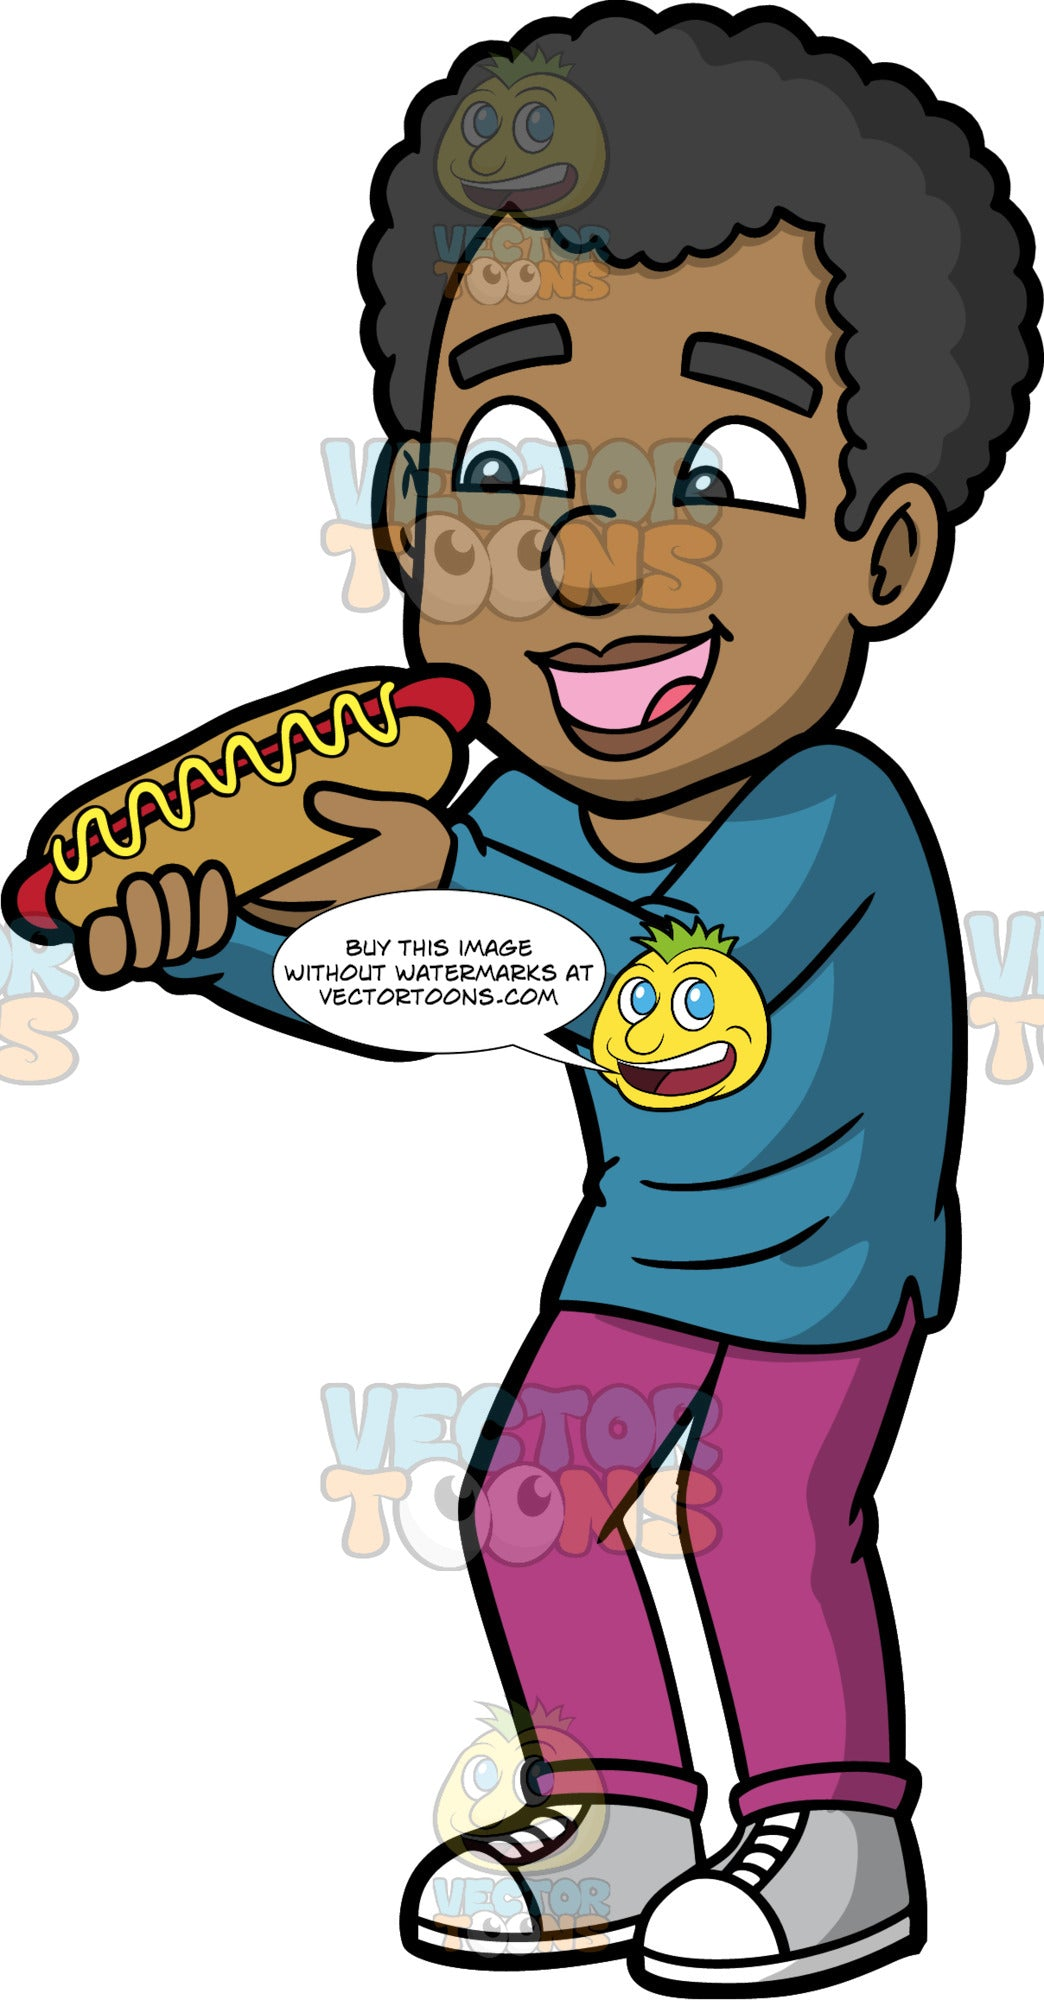 Jimmy Eating A Hot Dog. A black man wearing fuchsia coloured pants, a long sleeve blue shirt, and light gray running shoes, opening his mouth and getting ready to eat a hot dog with mustard